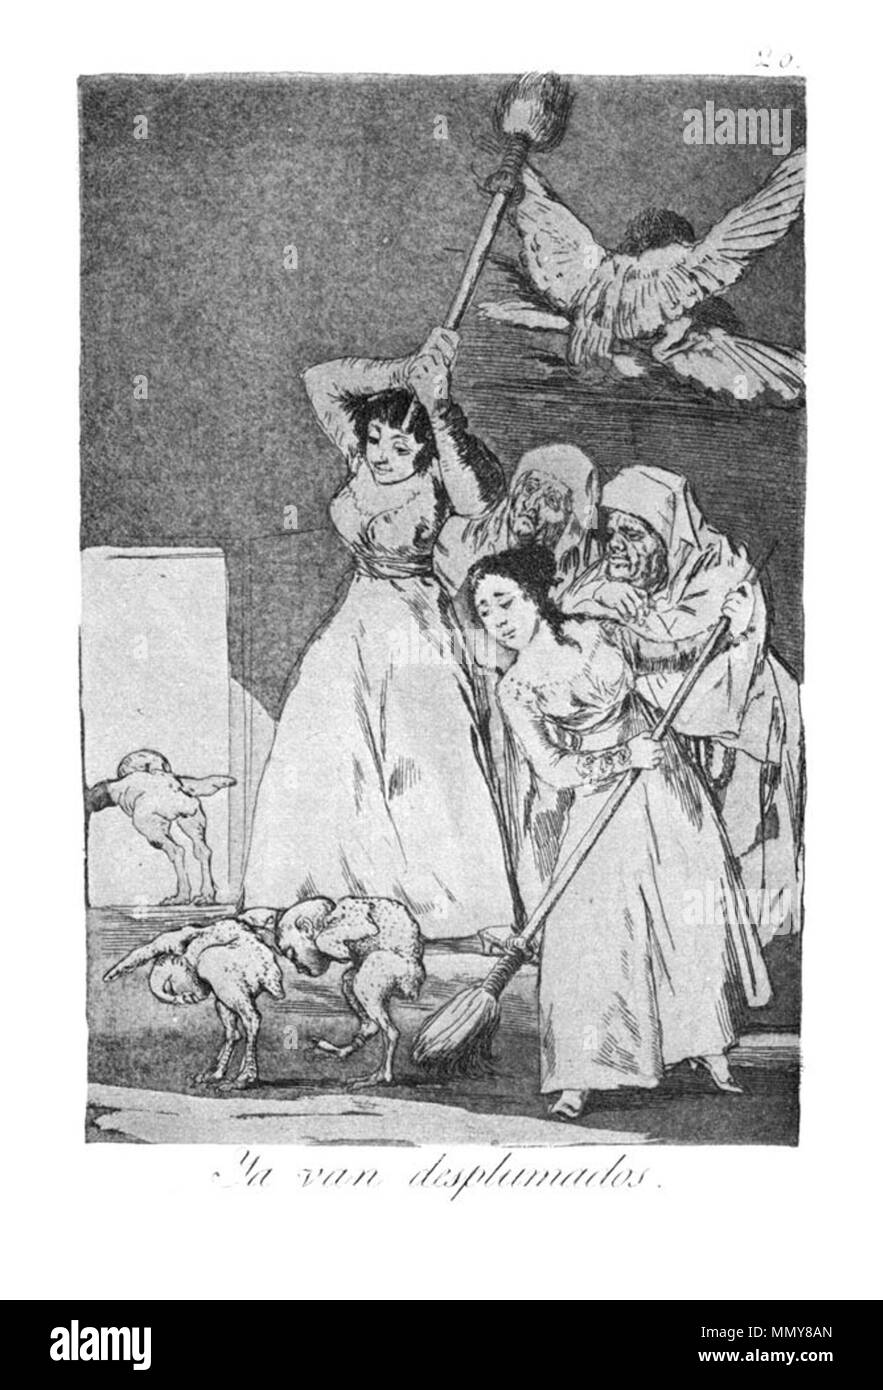 . Los Caprichos is a set of 80 aquatint prints created by Francisco Goya for release in 1799.  . 1799.   Francisco Goya (1746–1828)   Alternative names Francisco Goya Lucientes, Francisco de Goya y Lucientes, Francisco José Goya Lucientes  Description Spanish painter, printmaker, lithographer, engraver and etcher  Date of birth/death 30 March 1746 16 April 1828  Location of birth/death Fuendetodos Bordeaux  Work location Madrid, Zaragoza, Bordeaux  Authority control  : Q5432 VIAF:?54343141 ISNI:?0000 0001 2280 1608 ULAN:?500118936 LCCN:?n79003363 NLA:?36545788 WorldCat Goya - Caprichos (20 - Stock Image